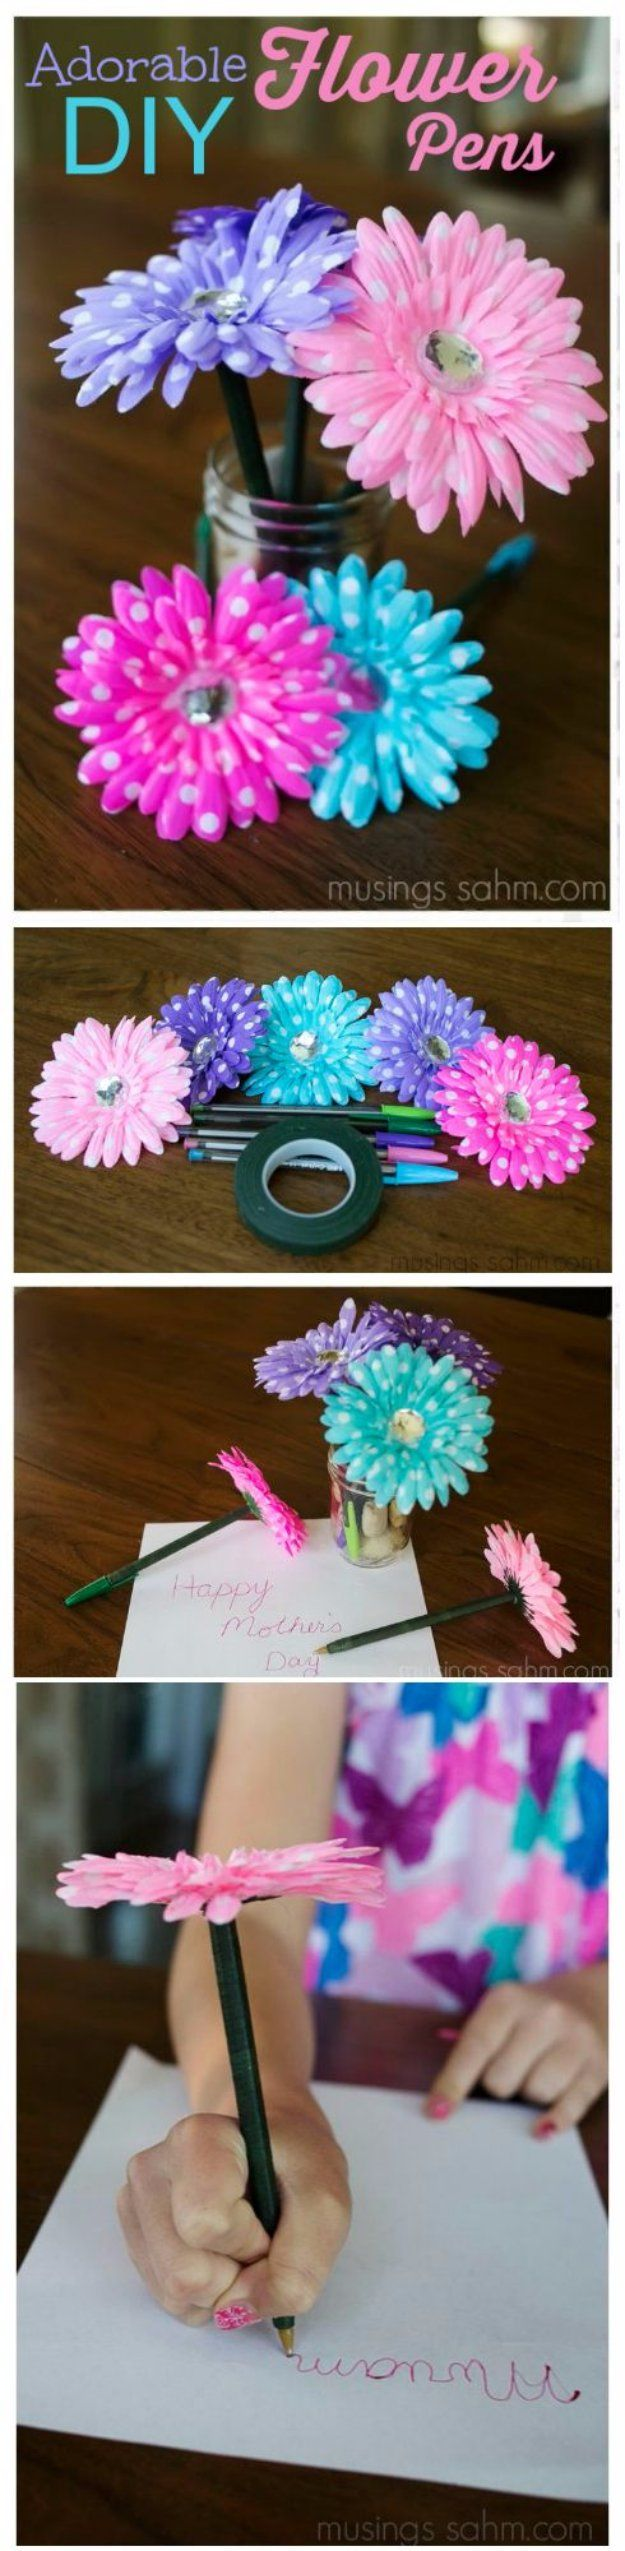 Best 25 Homemade Crafts Ideas On Pinterest